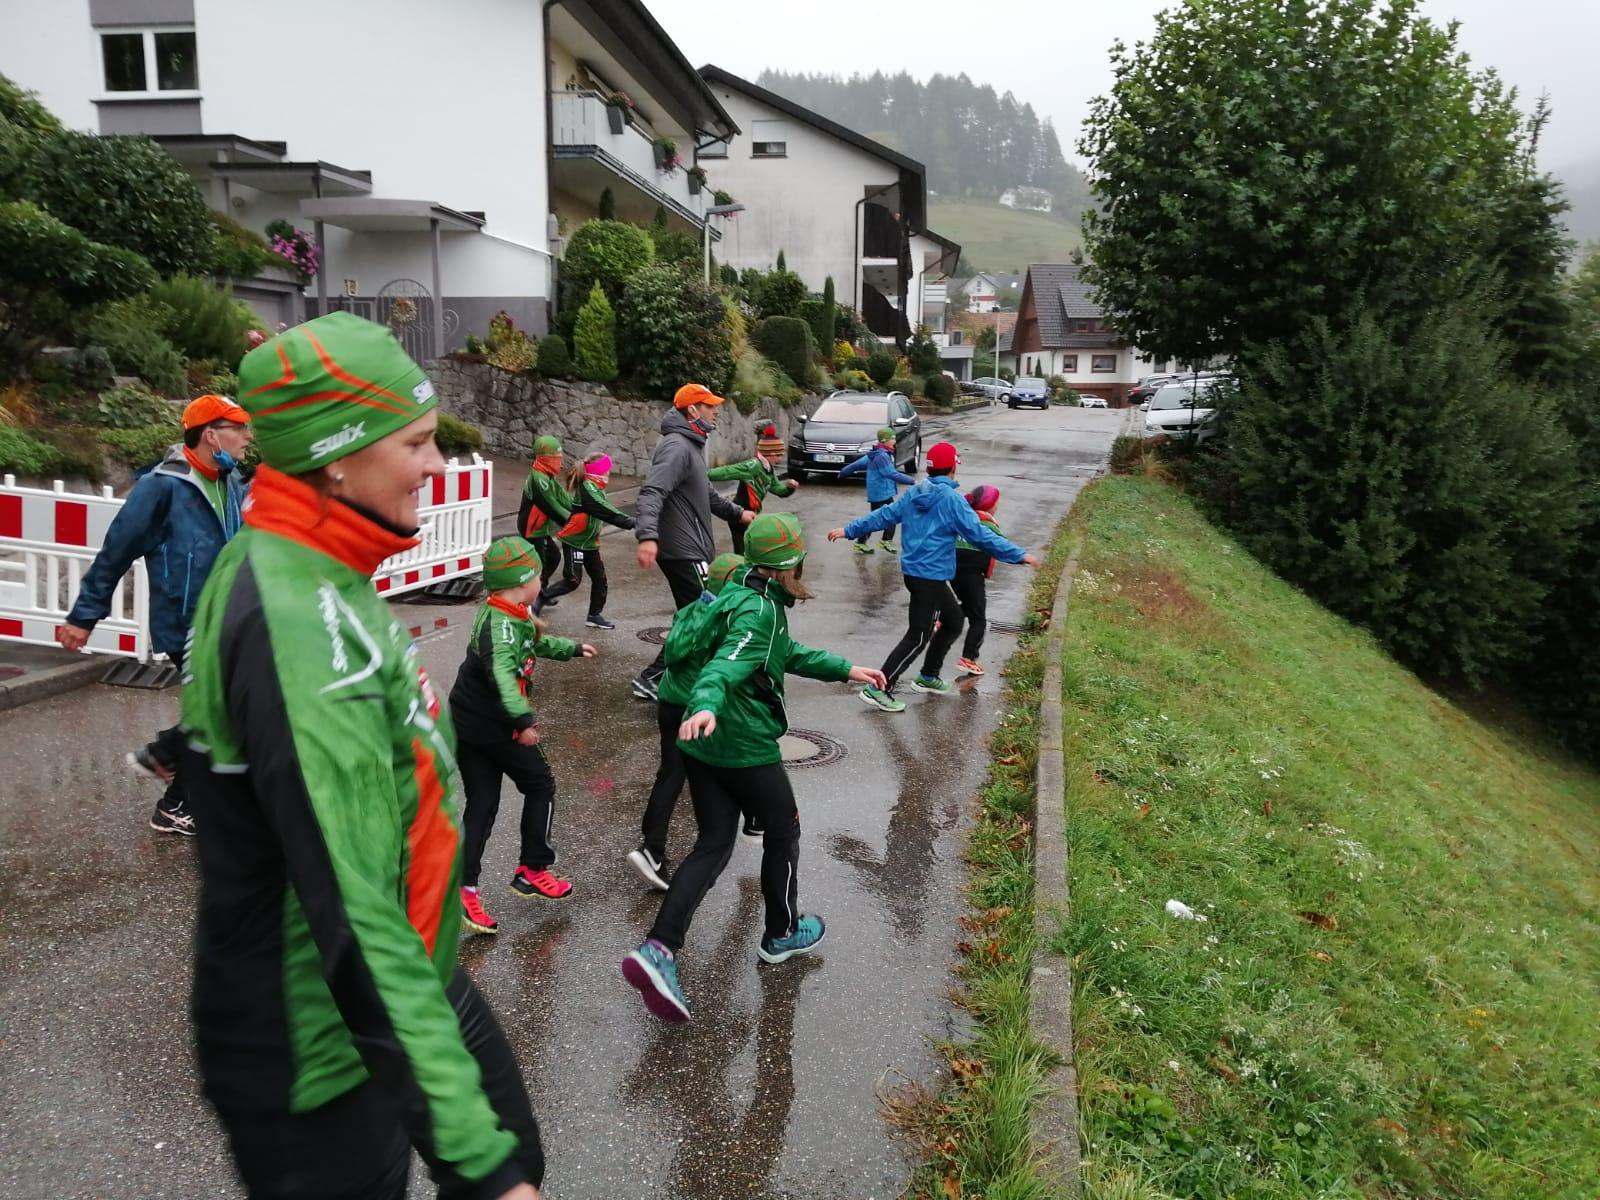 3. Oktober - Skiteam traditionell in Seebach am Start